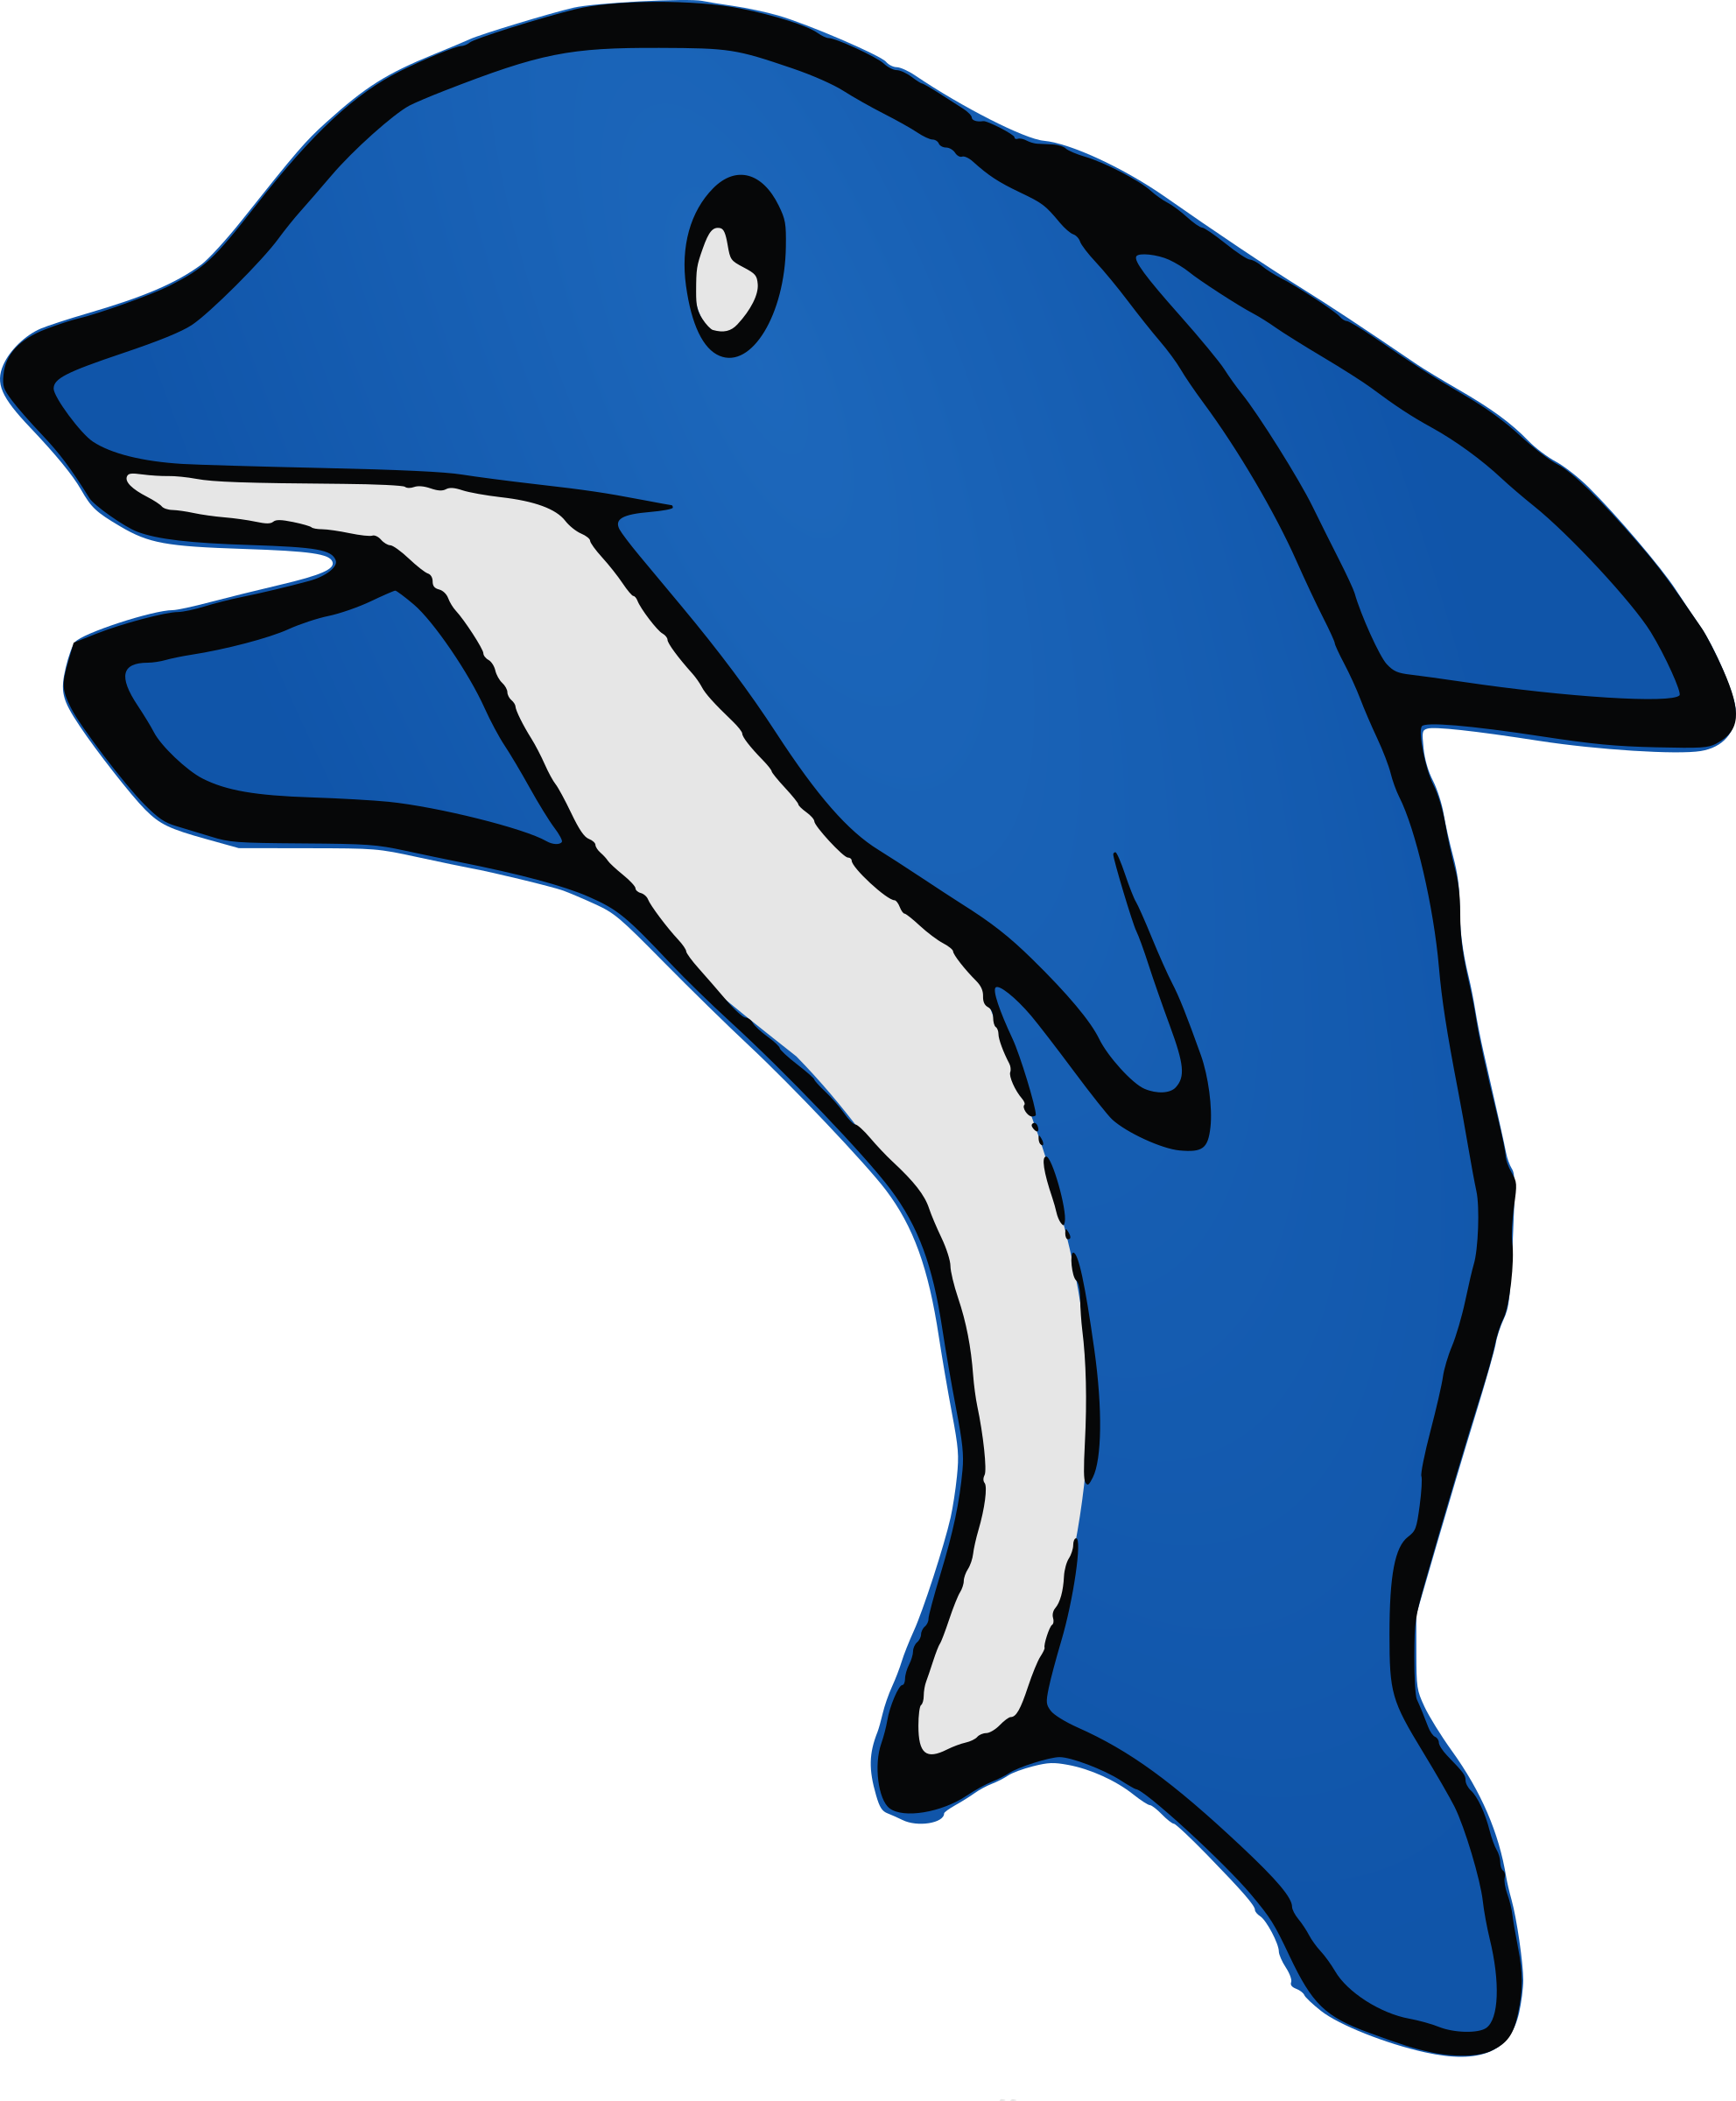 Dolphin clipart blue dolphin. Big image png